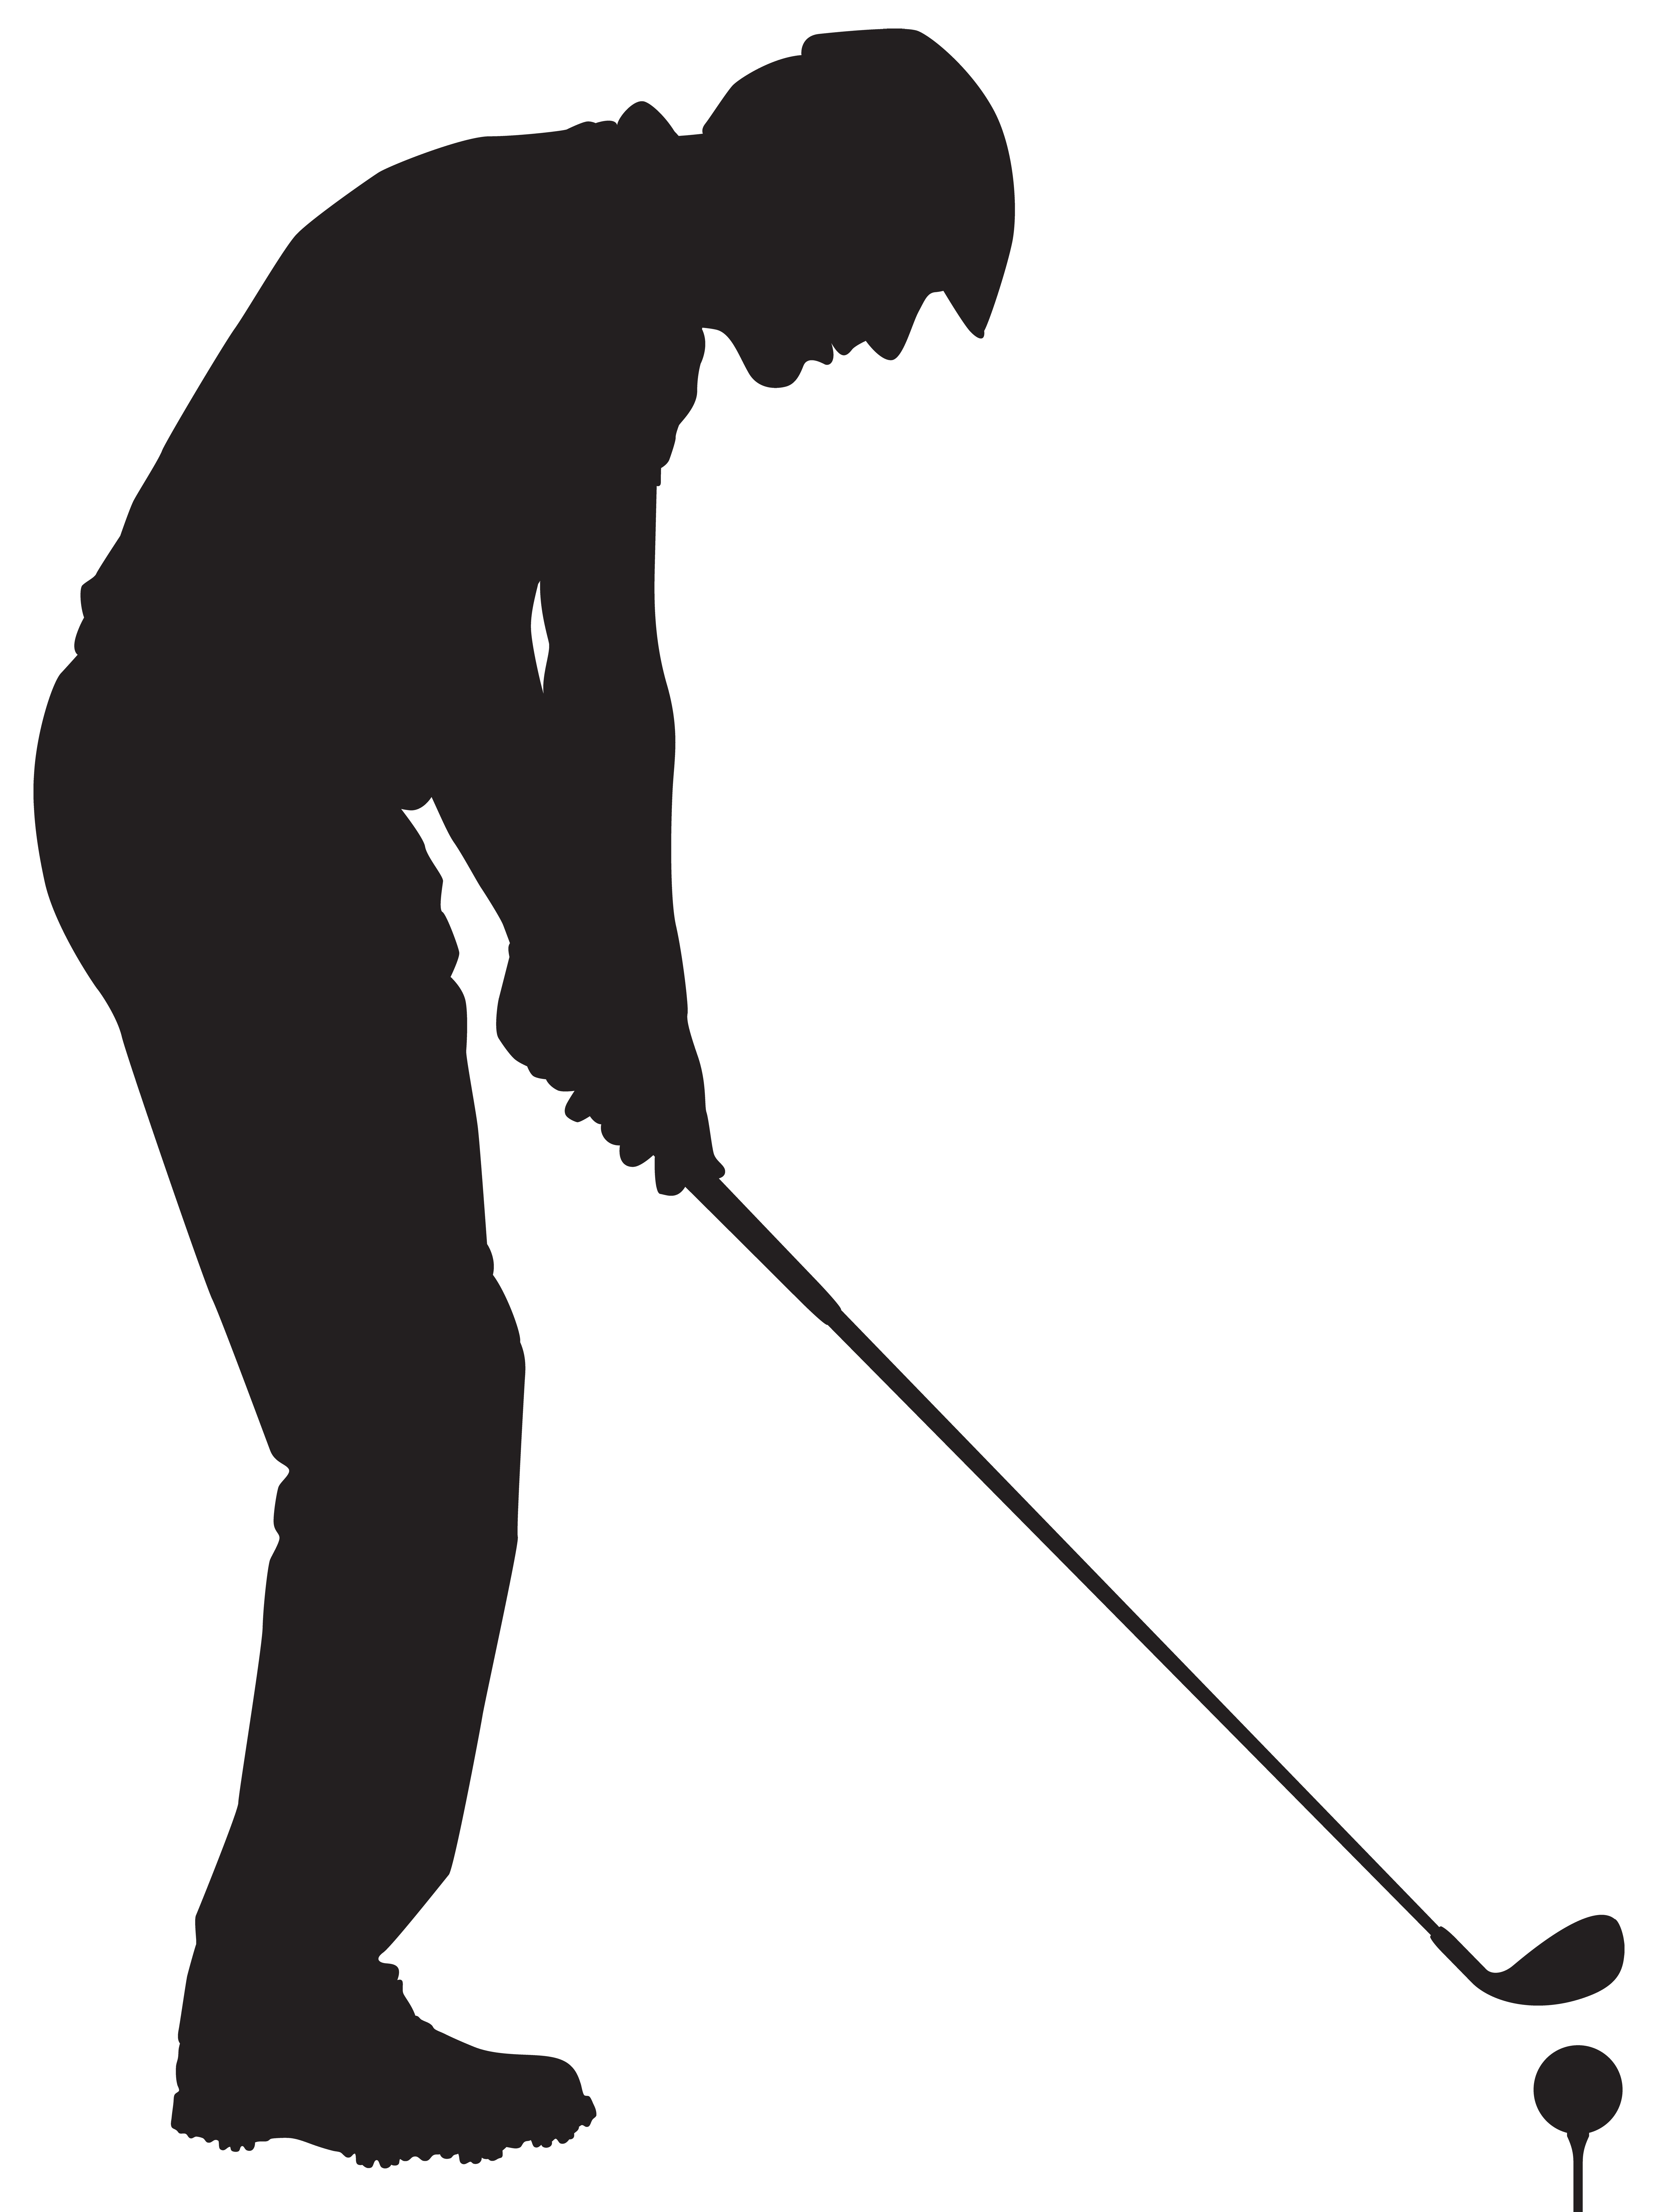 Guy clipart golfing. Man playing golf silhouette